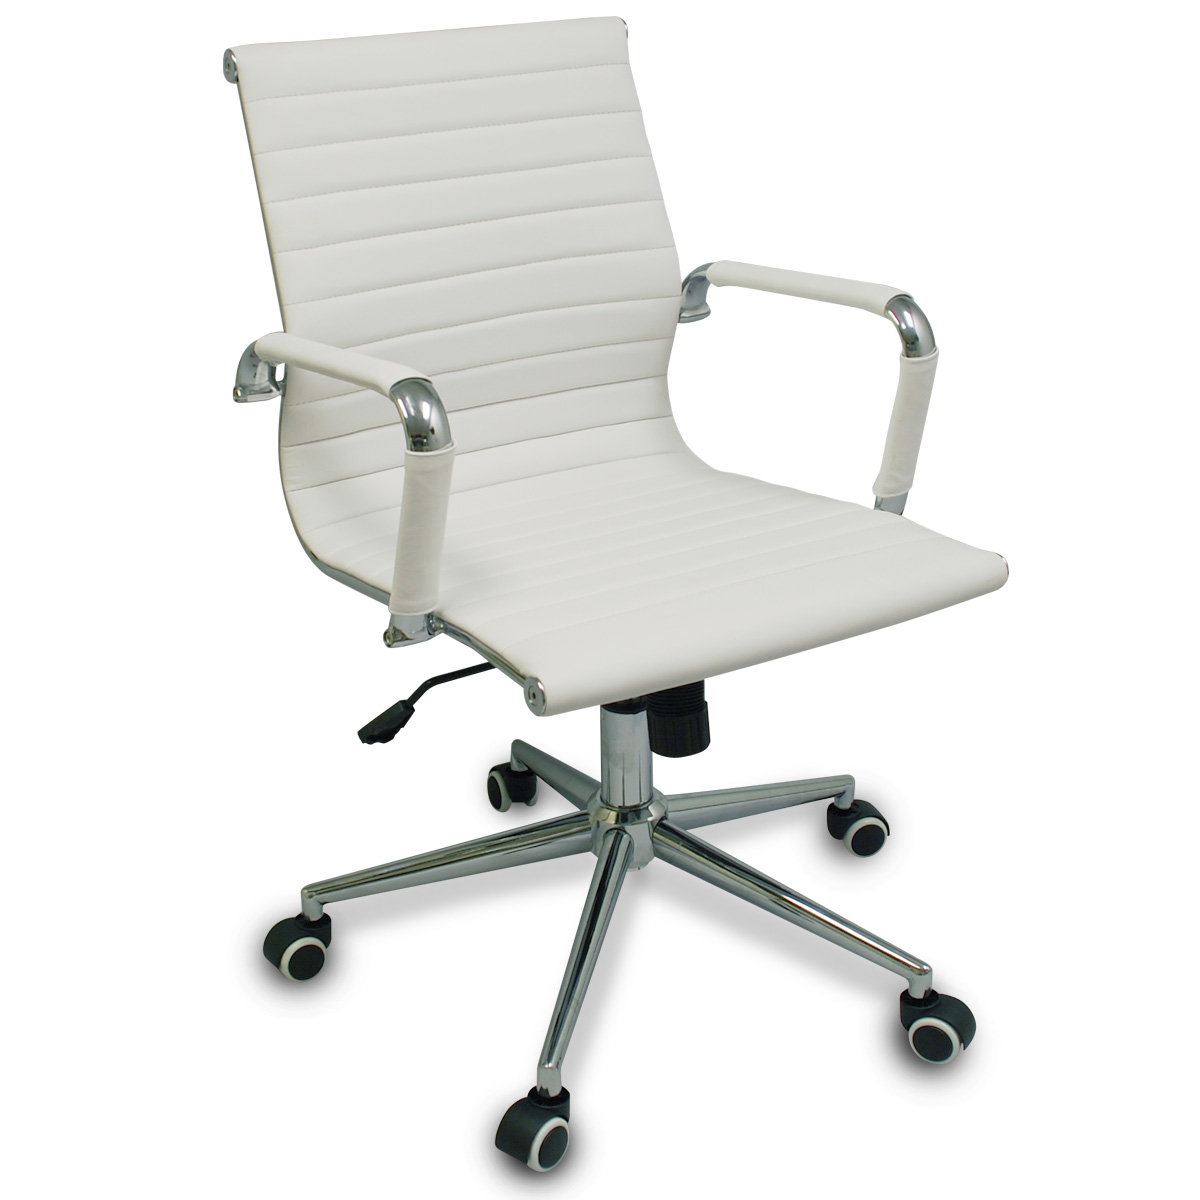 chair casters for hardwood floors eio push new white modern ribbed office with specialized